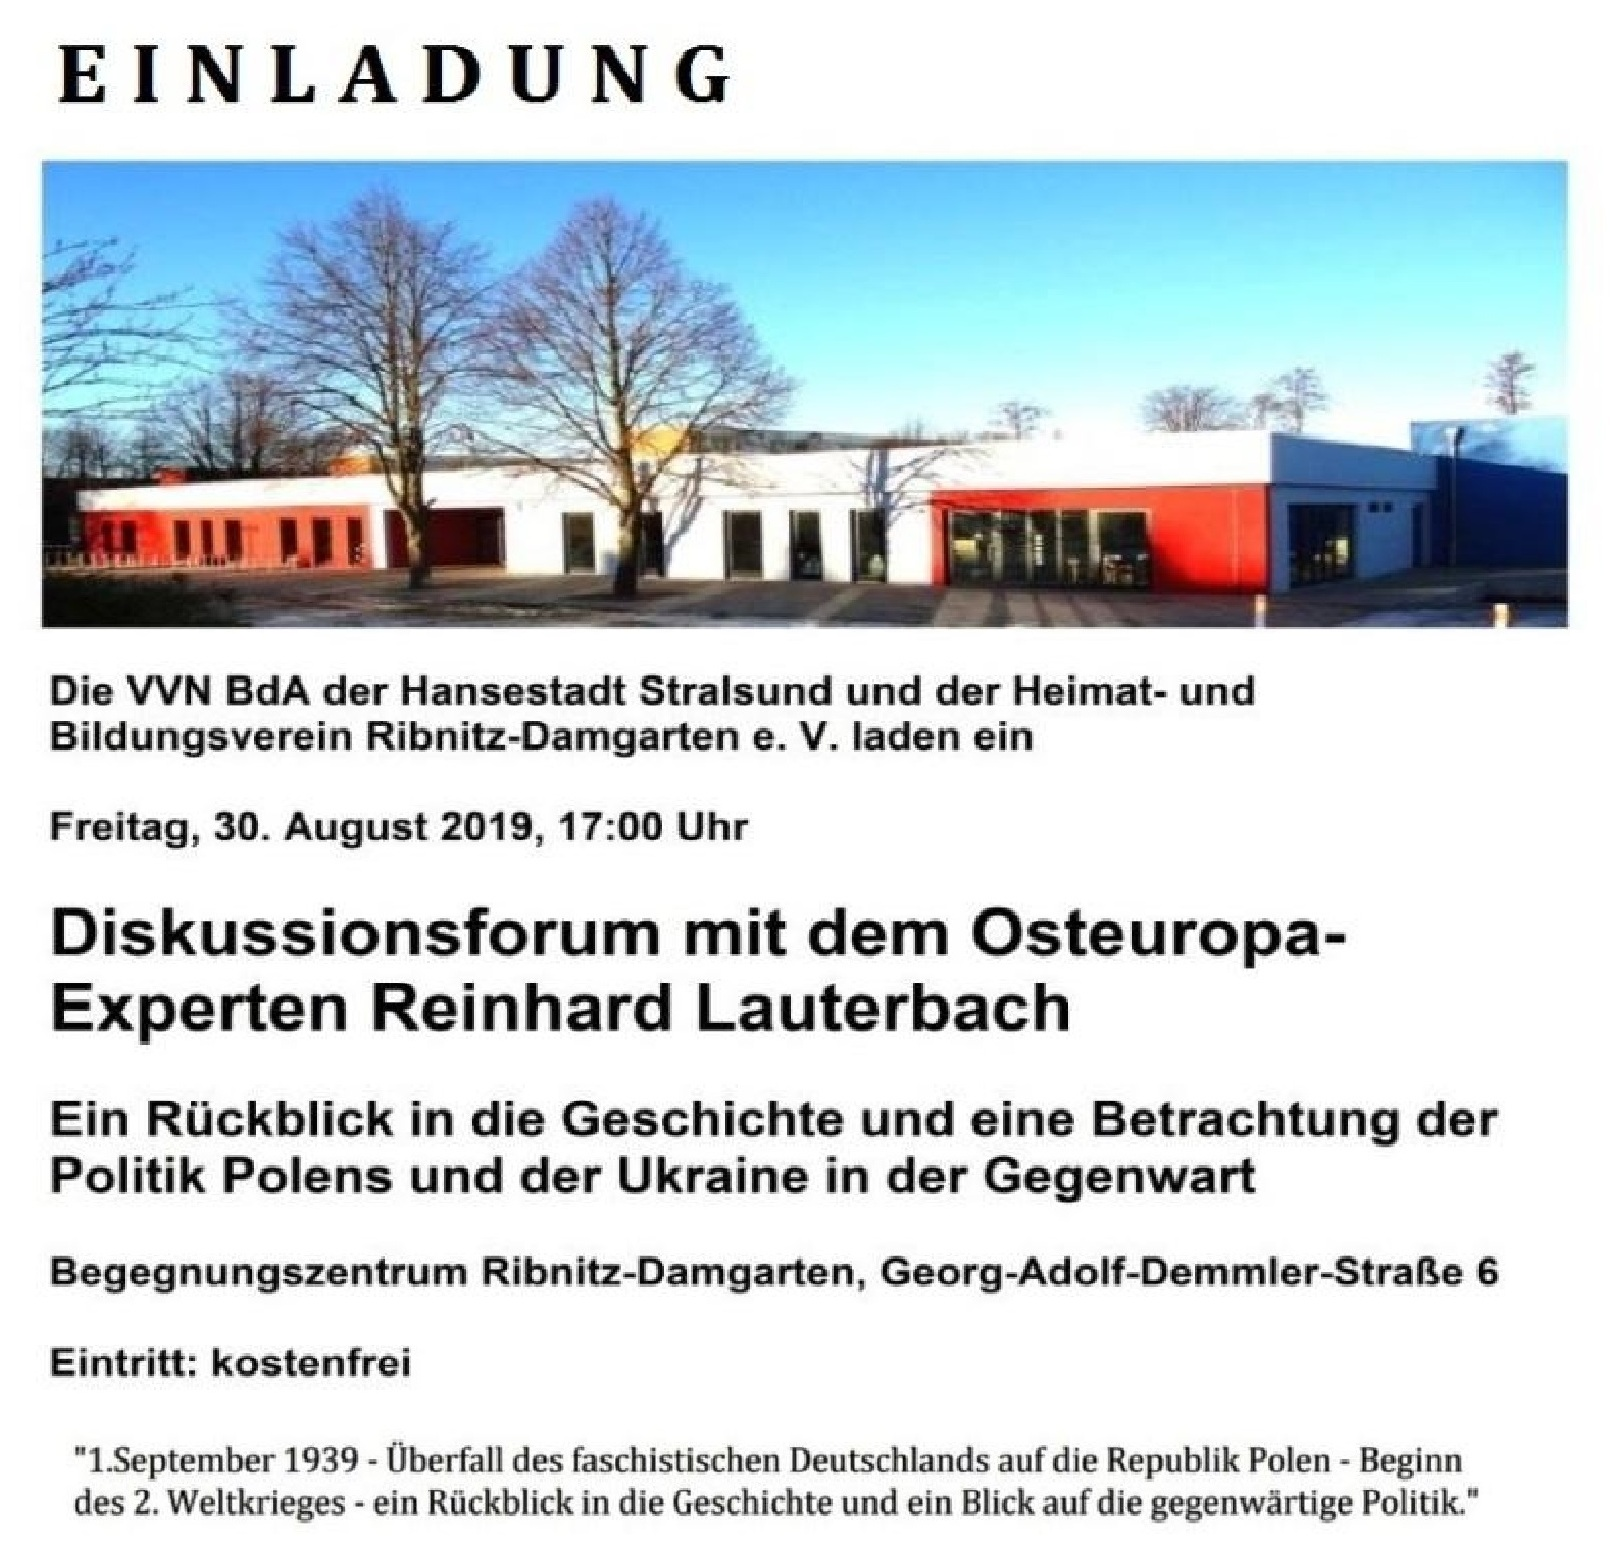 Einladung zum Diskussionsforum mit dem Osteuropa-Experten Reinhard Lauterbach am 30. August 2019 17:00 Uhr im Begegnungszentrum Ribnitz-Damgarten, Georg-Adolf-Demmler-Straße 6 - Ein Rückblick in die Geschichte und eine Betrachtung der Politik Polens und der Ukraine in der Gegenwart - Gemeinschaftsveranstaltung der VVN BdA Stralsund und des Heimat- und Bildungsvereins Ribnitz-Damgarten e. V. - Eintritt kostenfrei